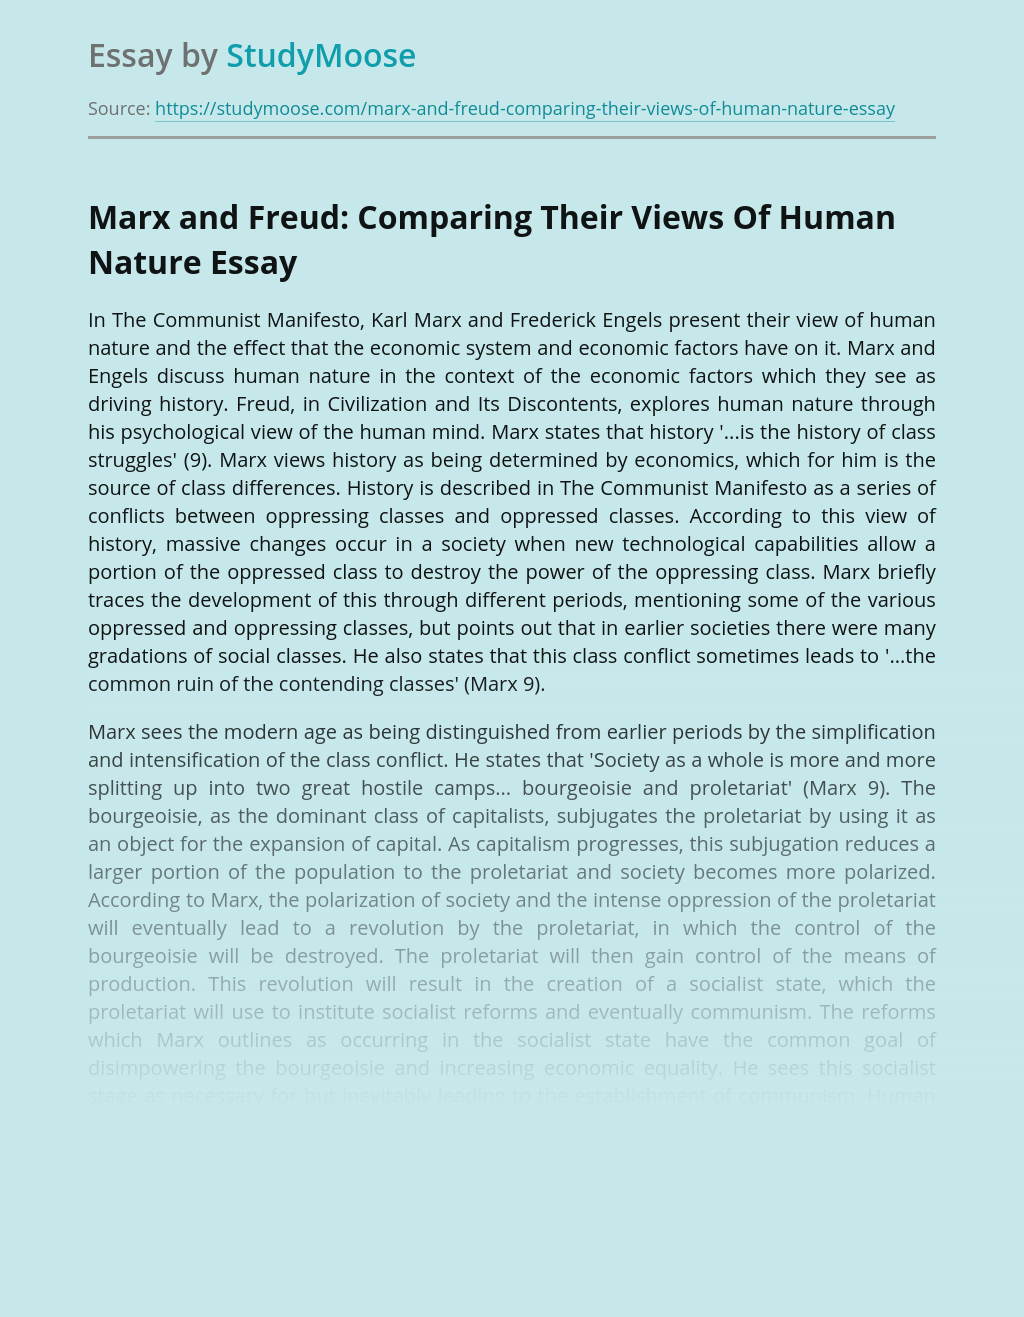 Marx and Freud: Comparing Their Views Of Human Nature